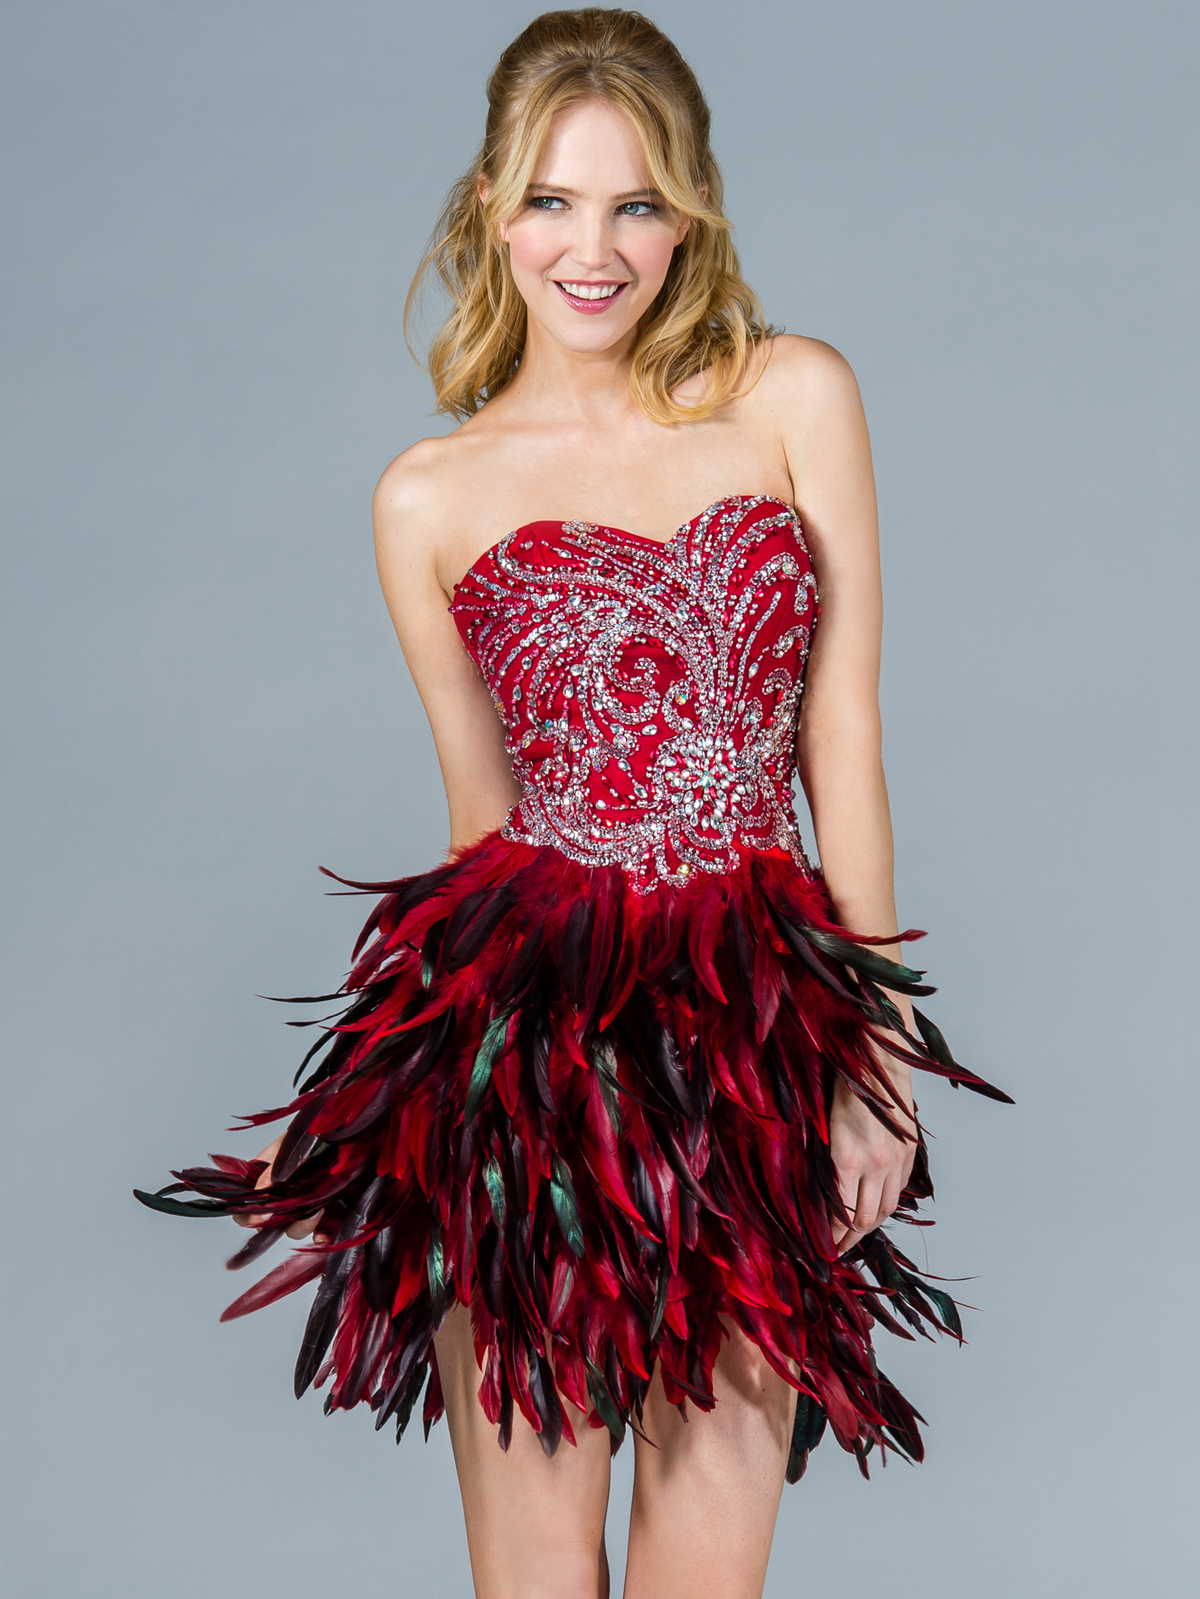 Feather Dress Picture Collection Dressedupgirl Com